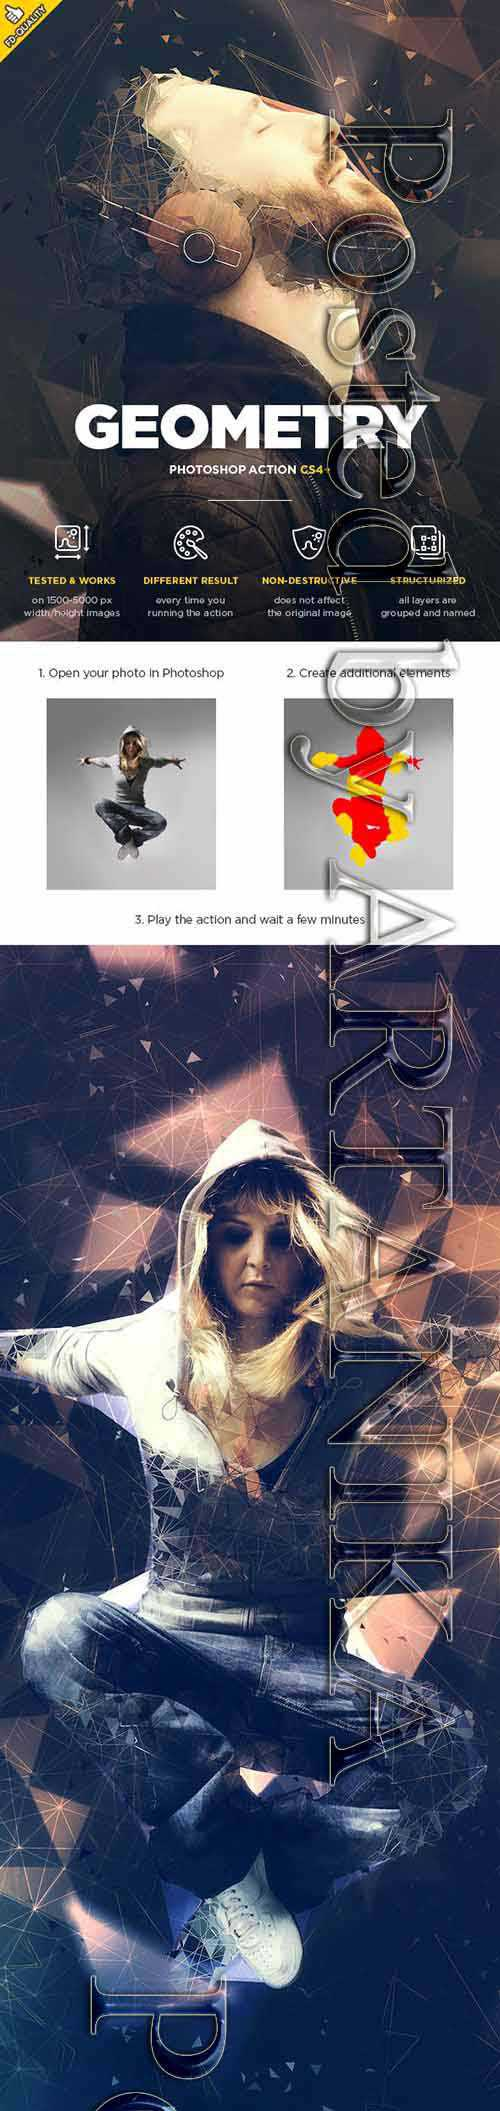 GraphicRiver - Geometry CS4+ Photoshop Action 21162767